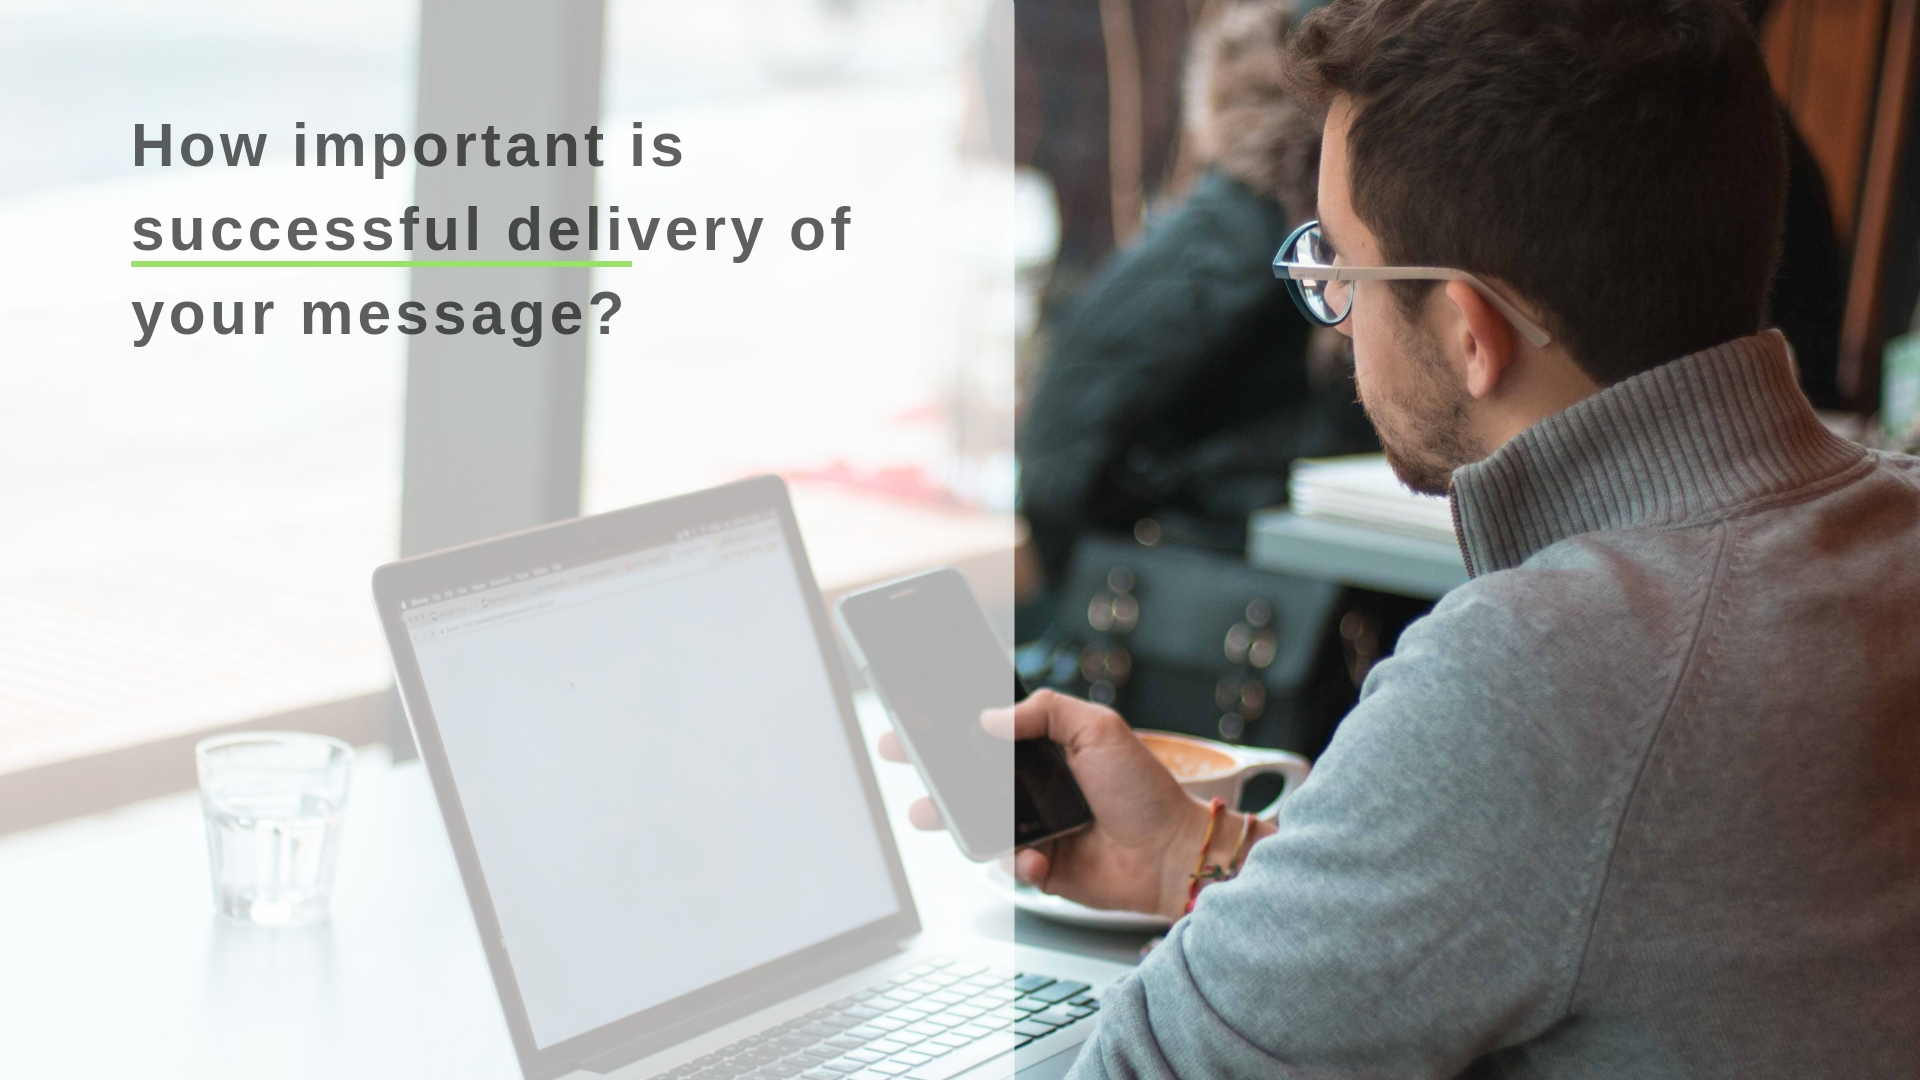 how-important-is-successful-delivery-of-your-message